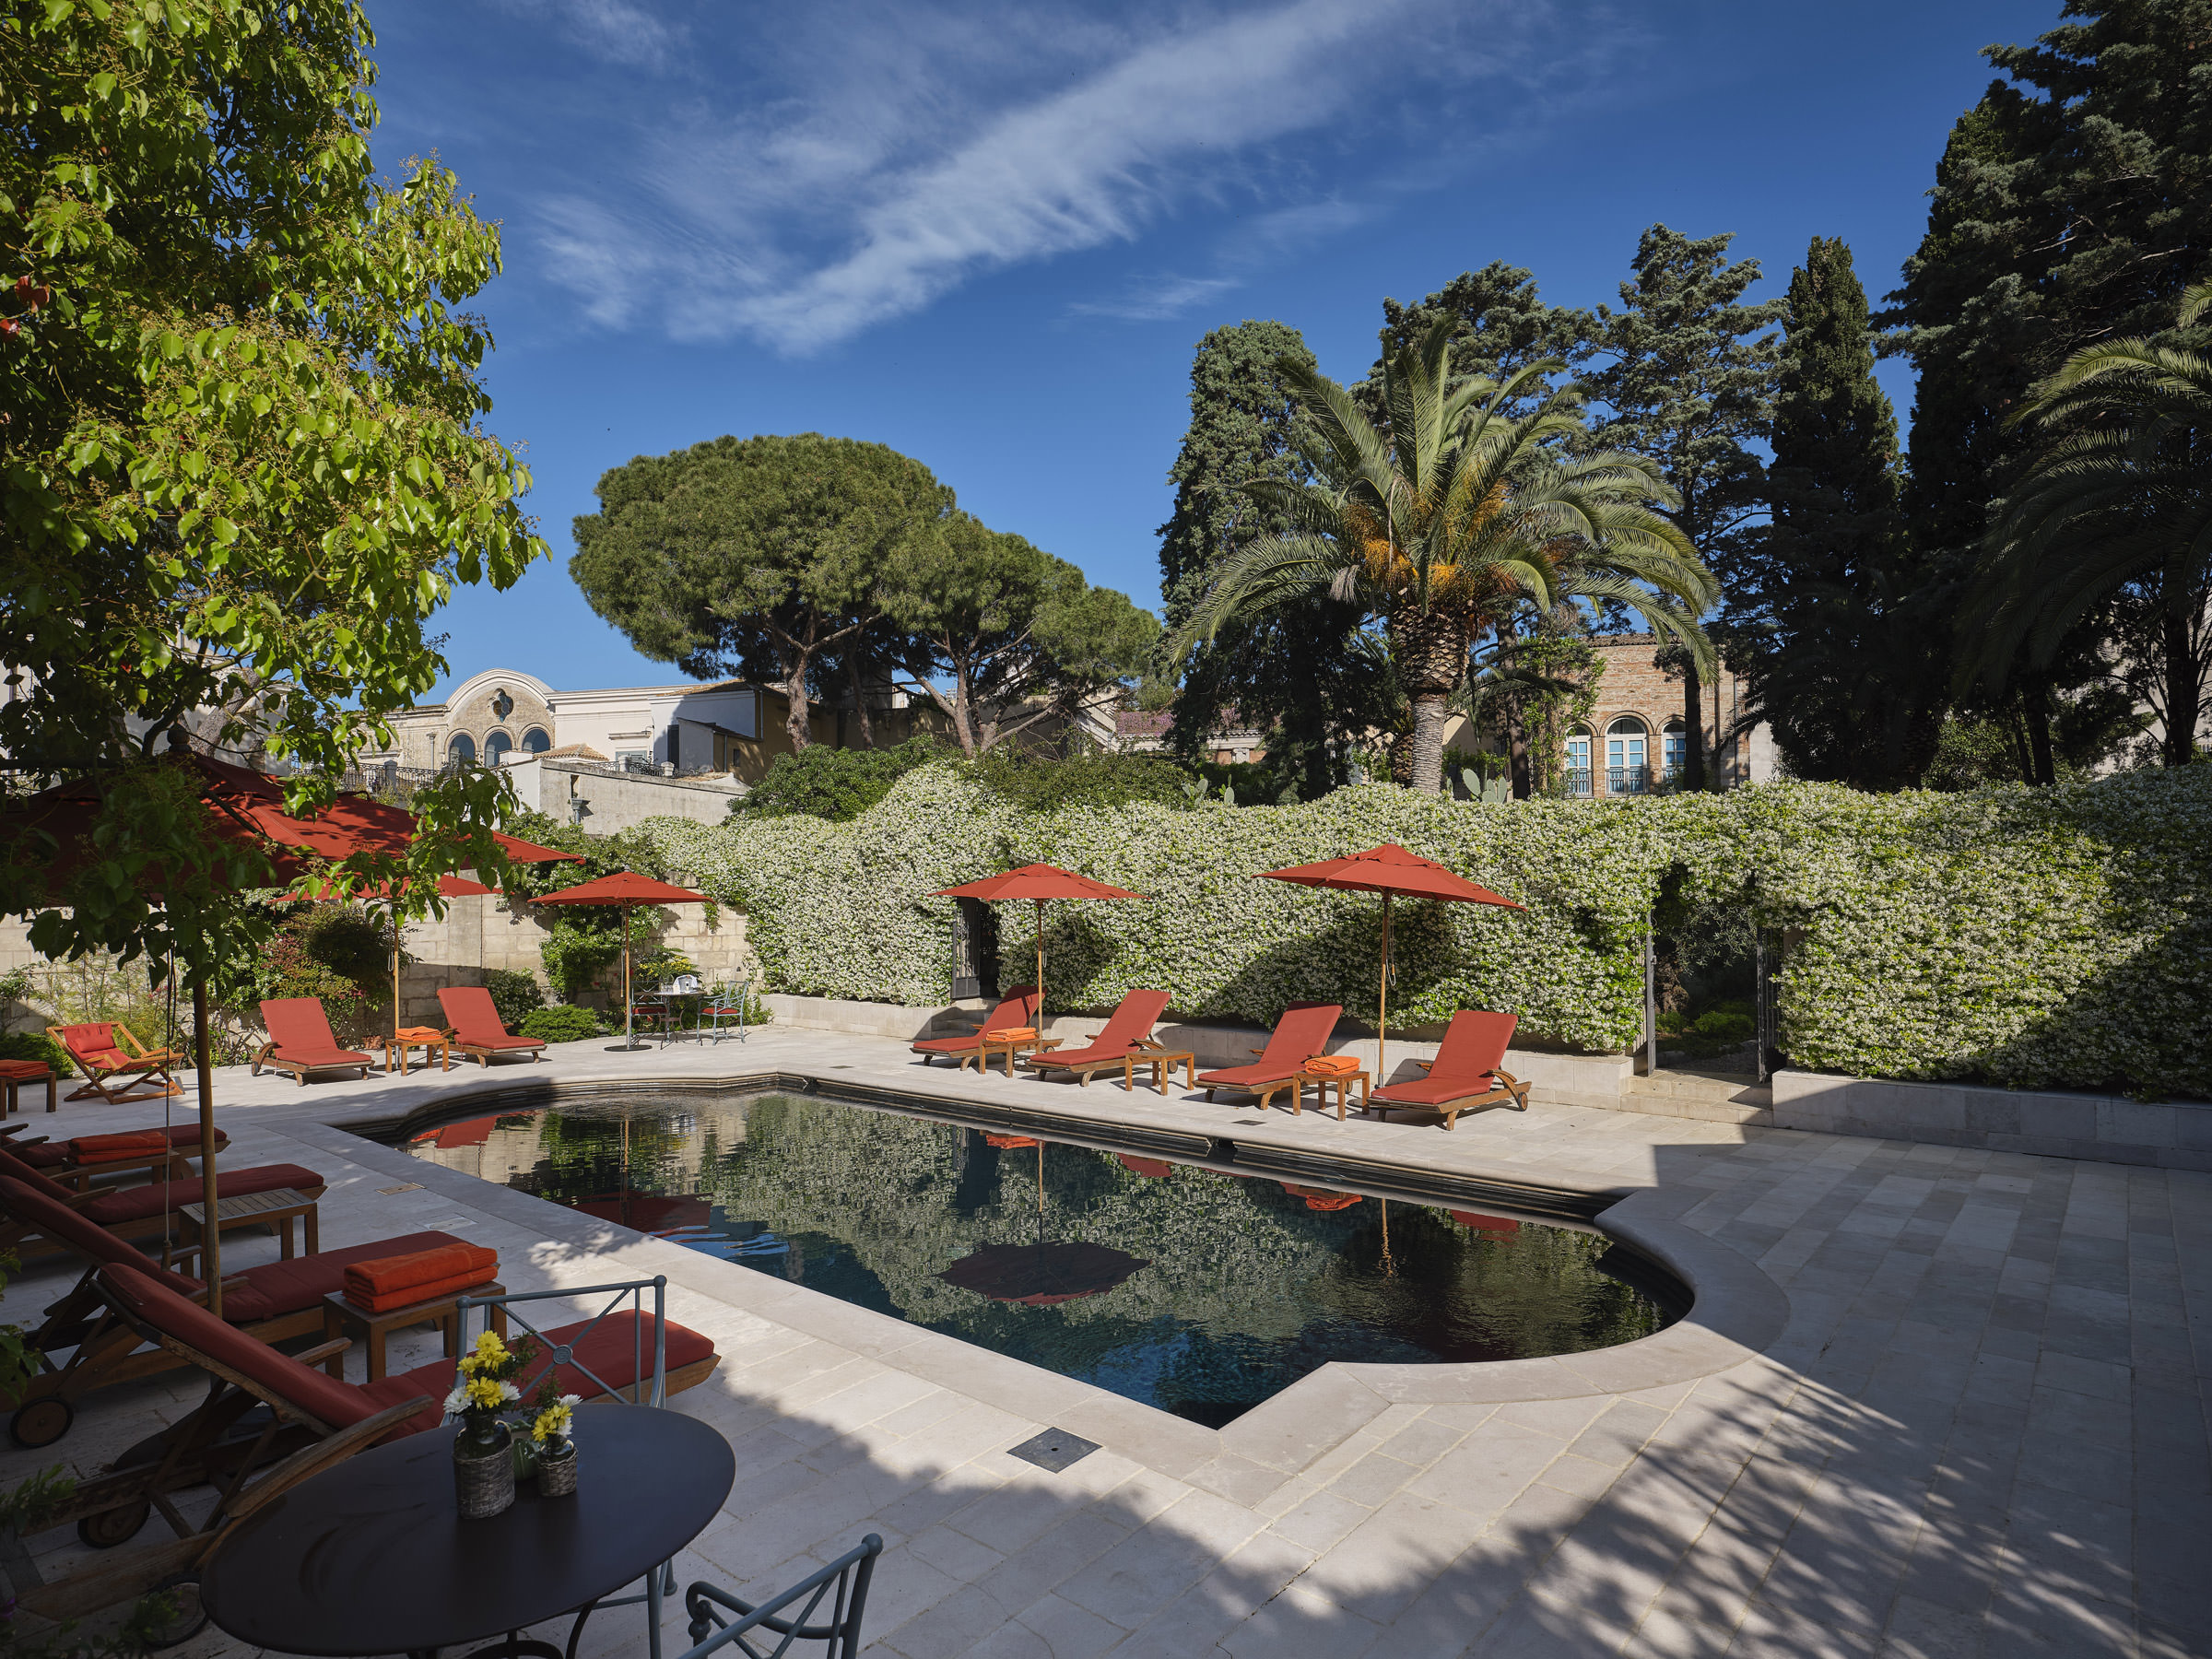 A pool with orange lounge chairs and an ivy covered wall.